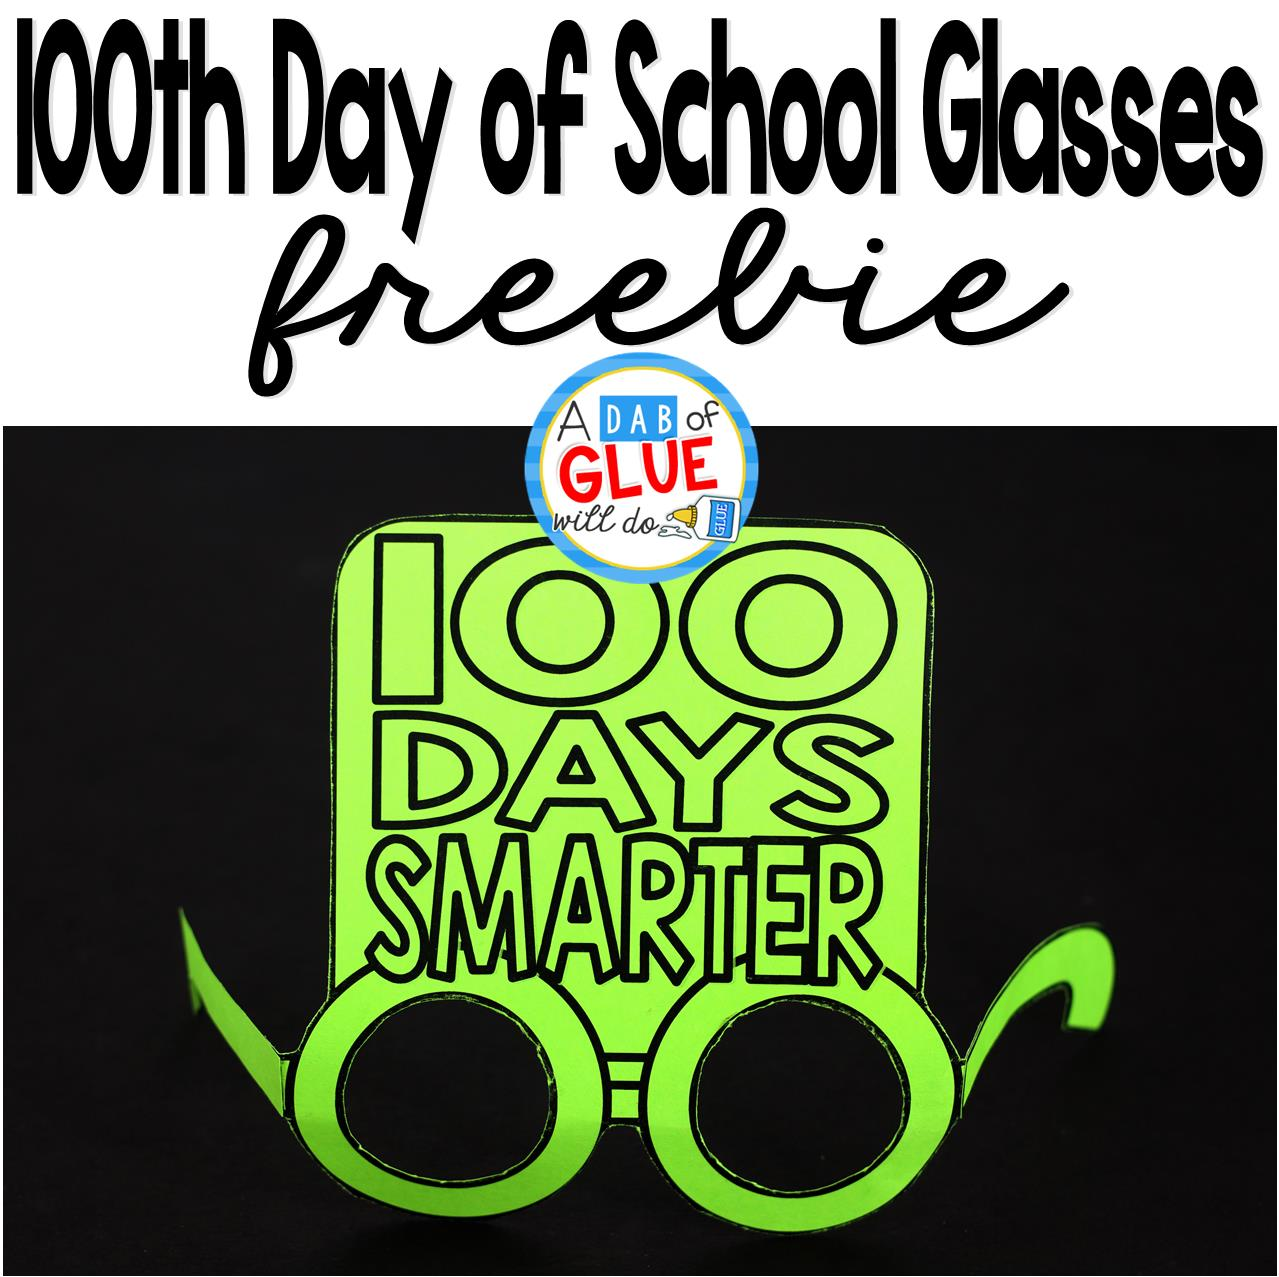 100th Day Glasses Printable Template